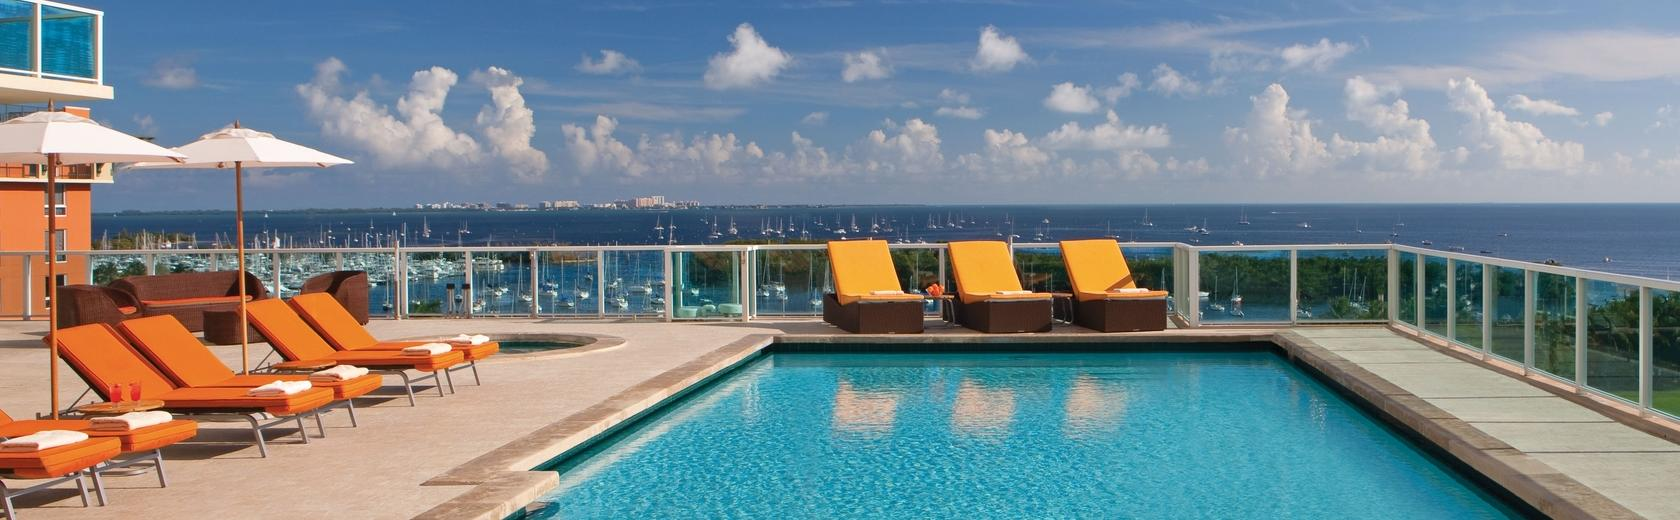 sonesta pool deck 2.jpg